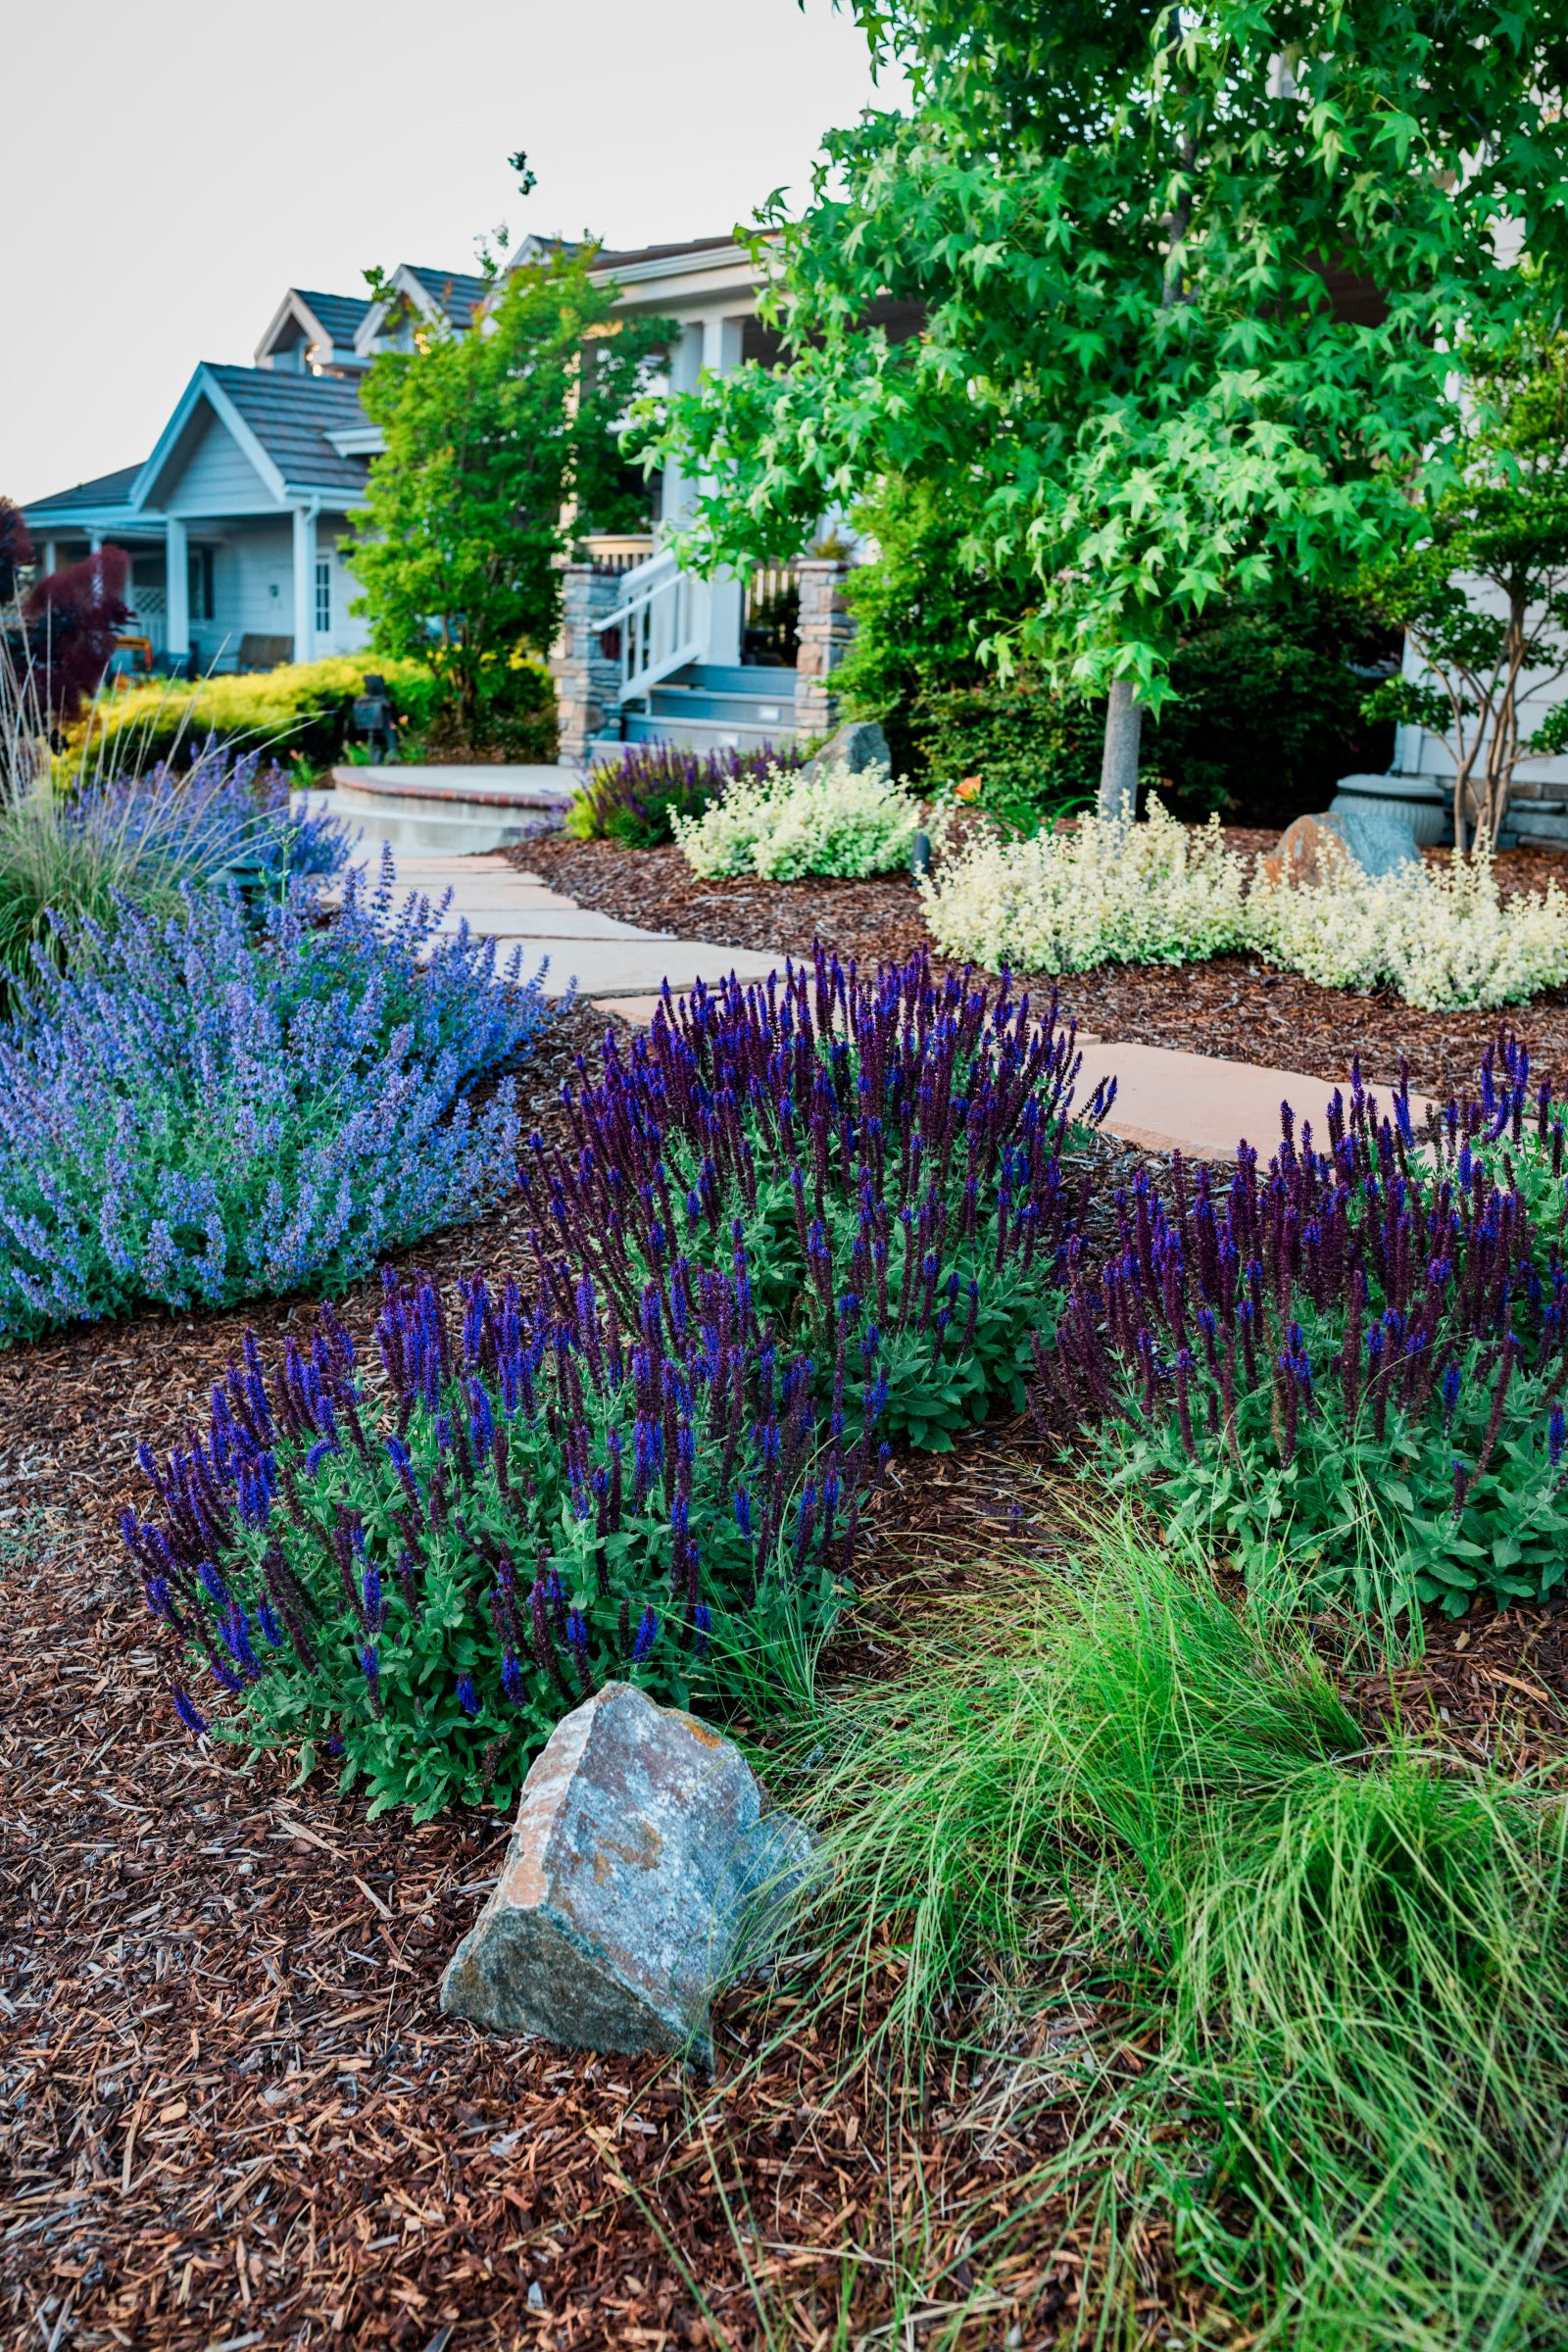 ... Tranquil Park Like Garden. We Included A Variety Of Colorful  Drought Tolerant Plants That Help Accent The House And Provide A  Comfortable Setting For ...